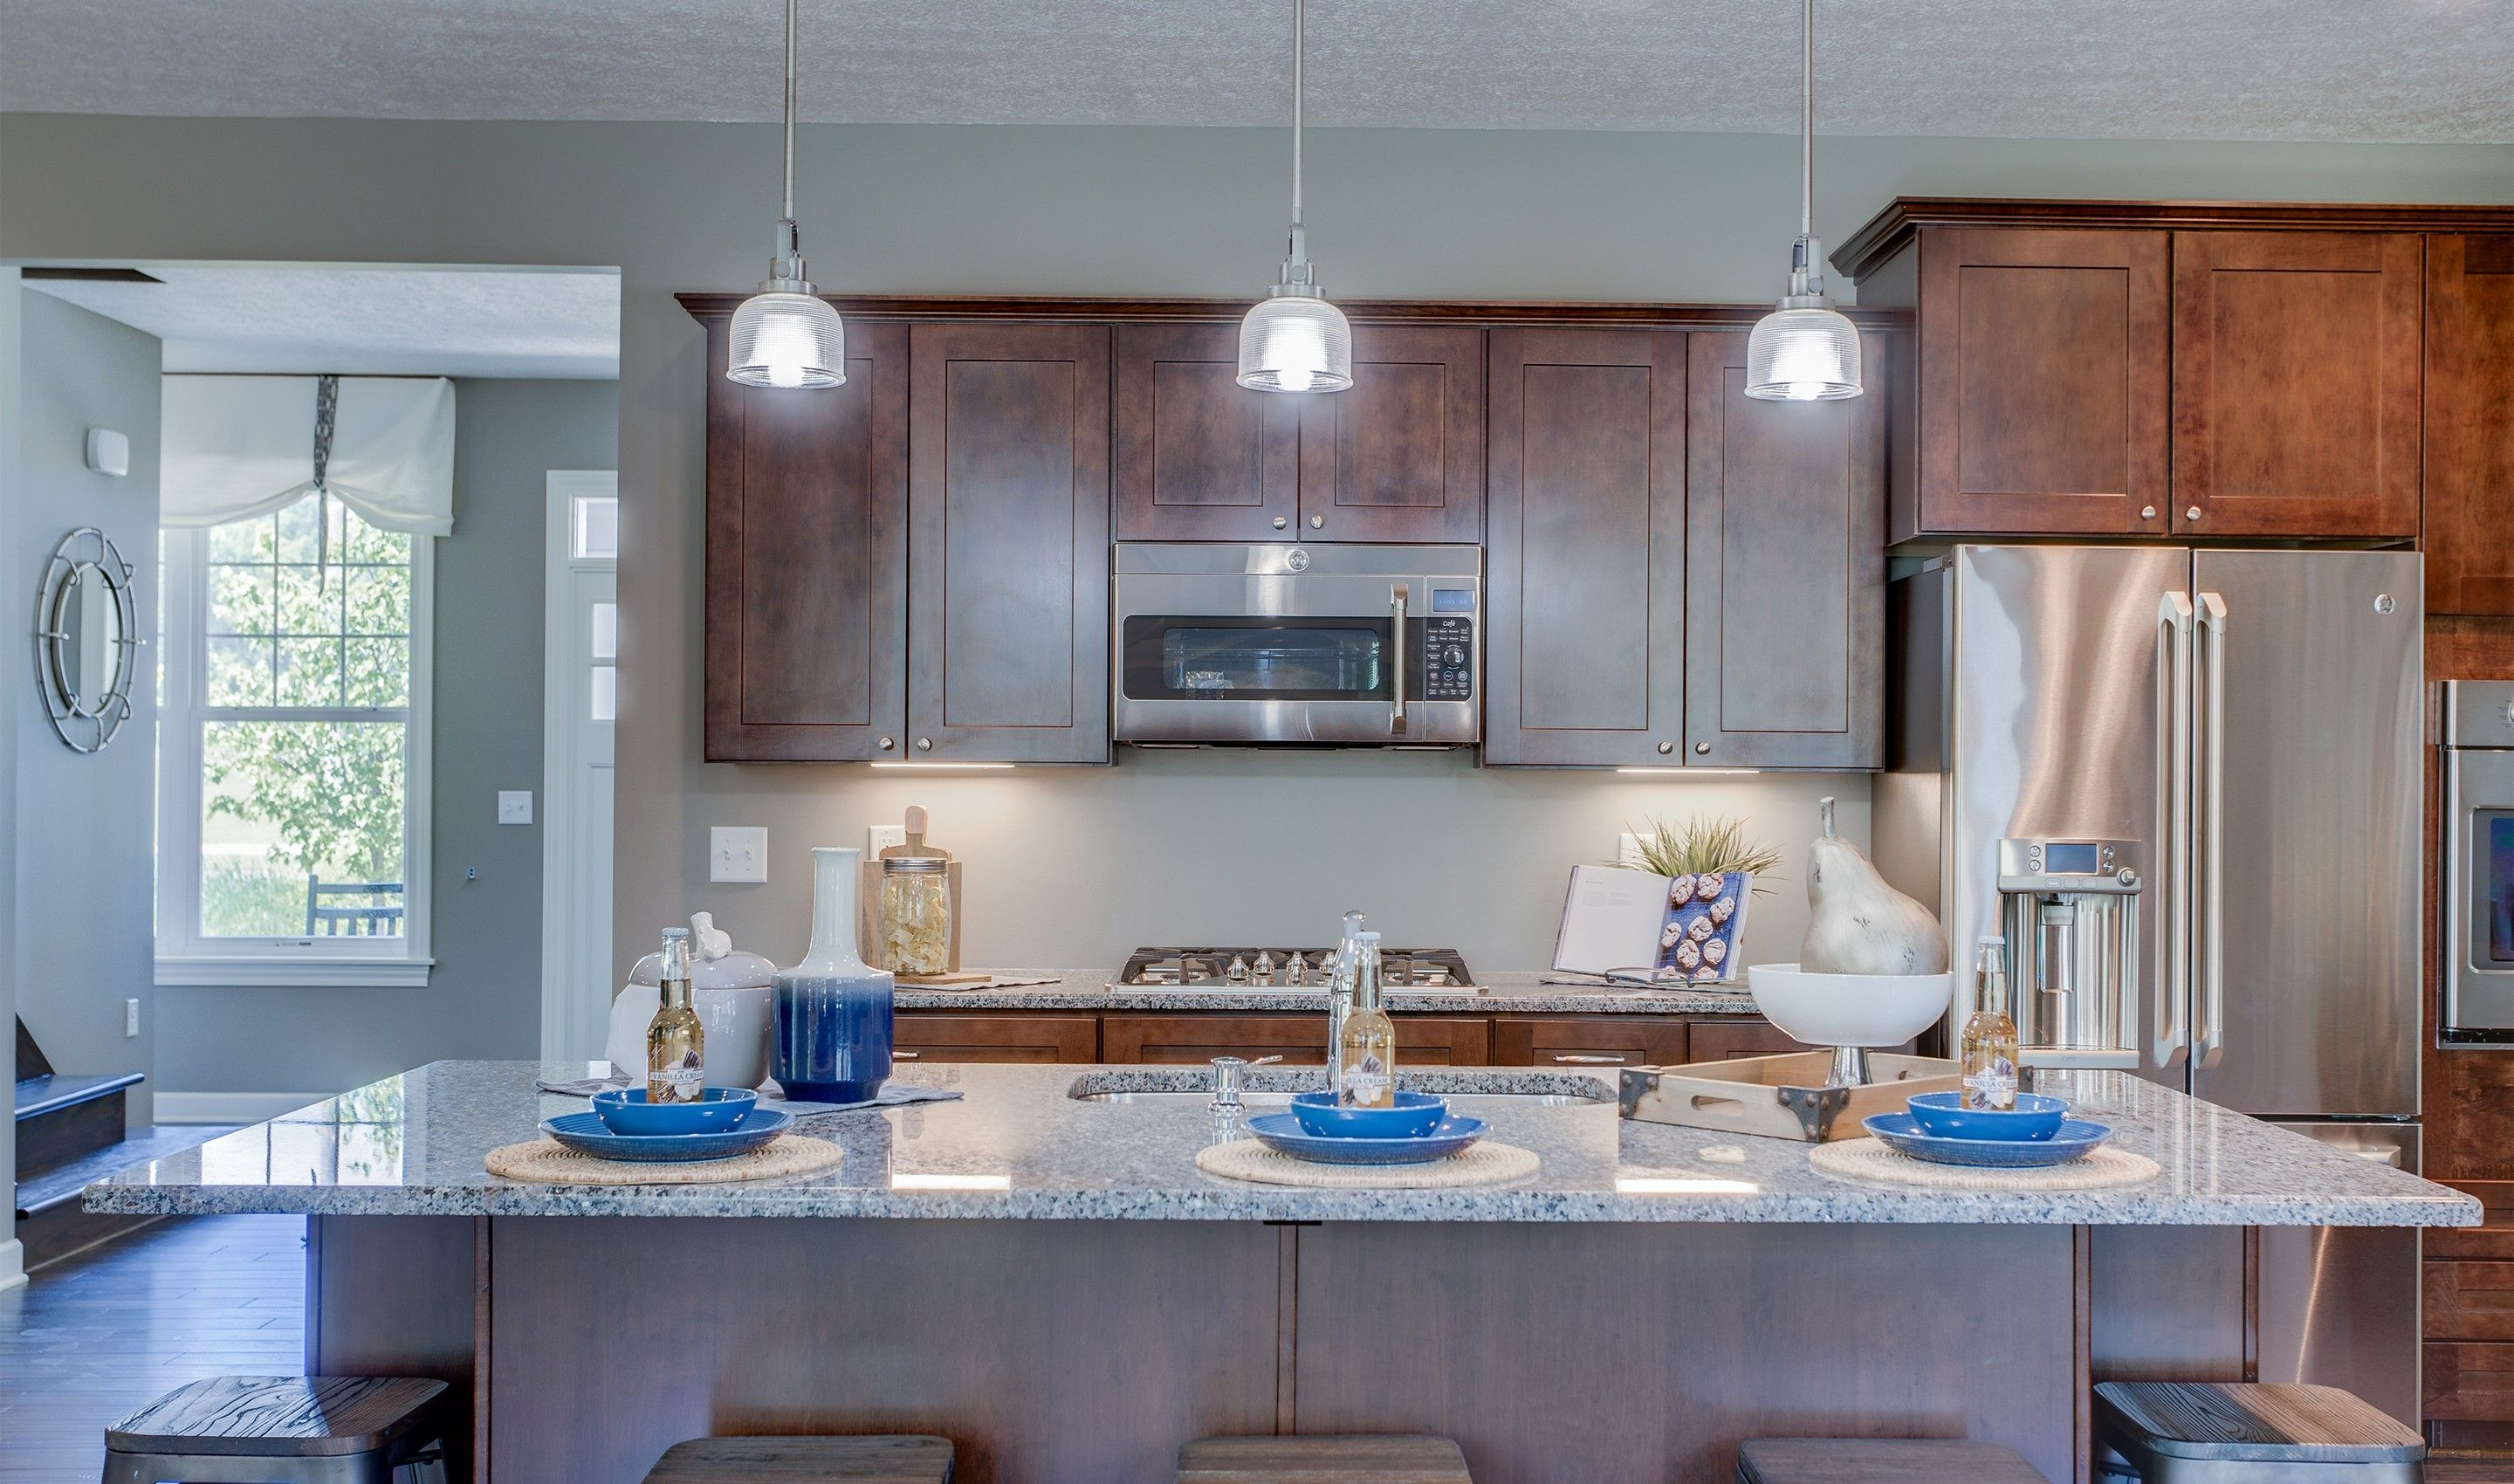 Kitchen featured in the Pendleton II By K. Hovnanian® Homes - Build on Your Lot in Mansfield, OH